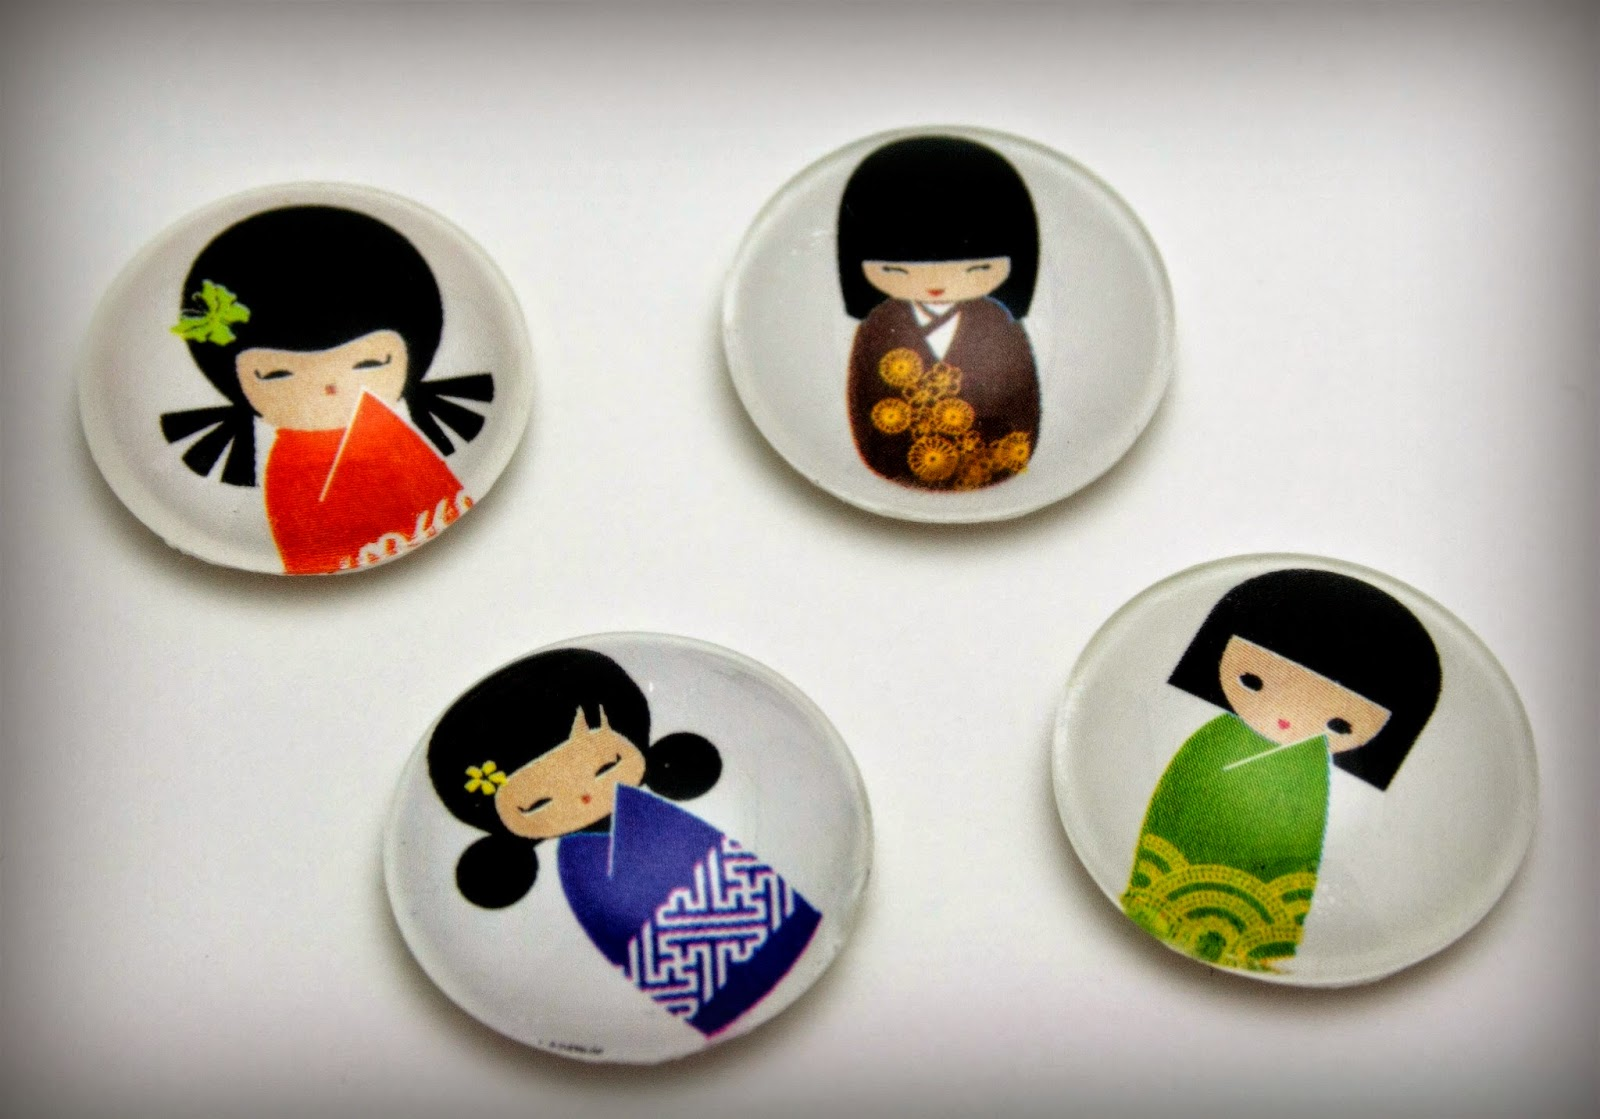 https://www.etsy.com/listing/188459664/kokeshie-dolls-glass-magnet-set-1-inch?ref=shop_home_active_4